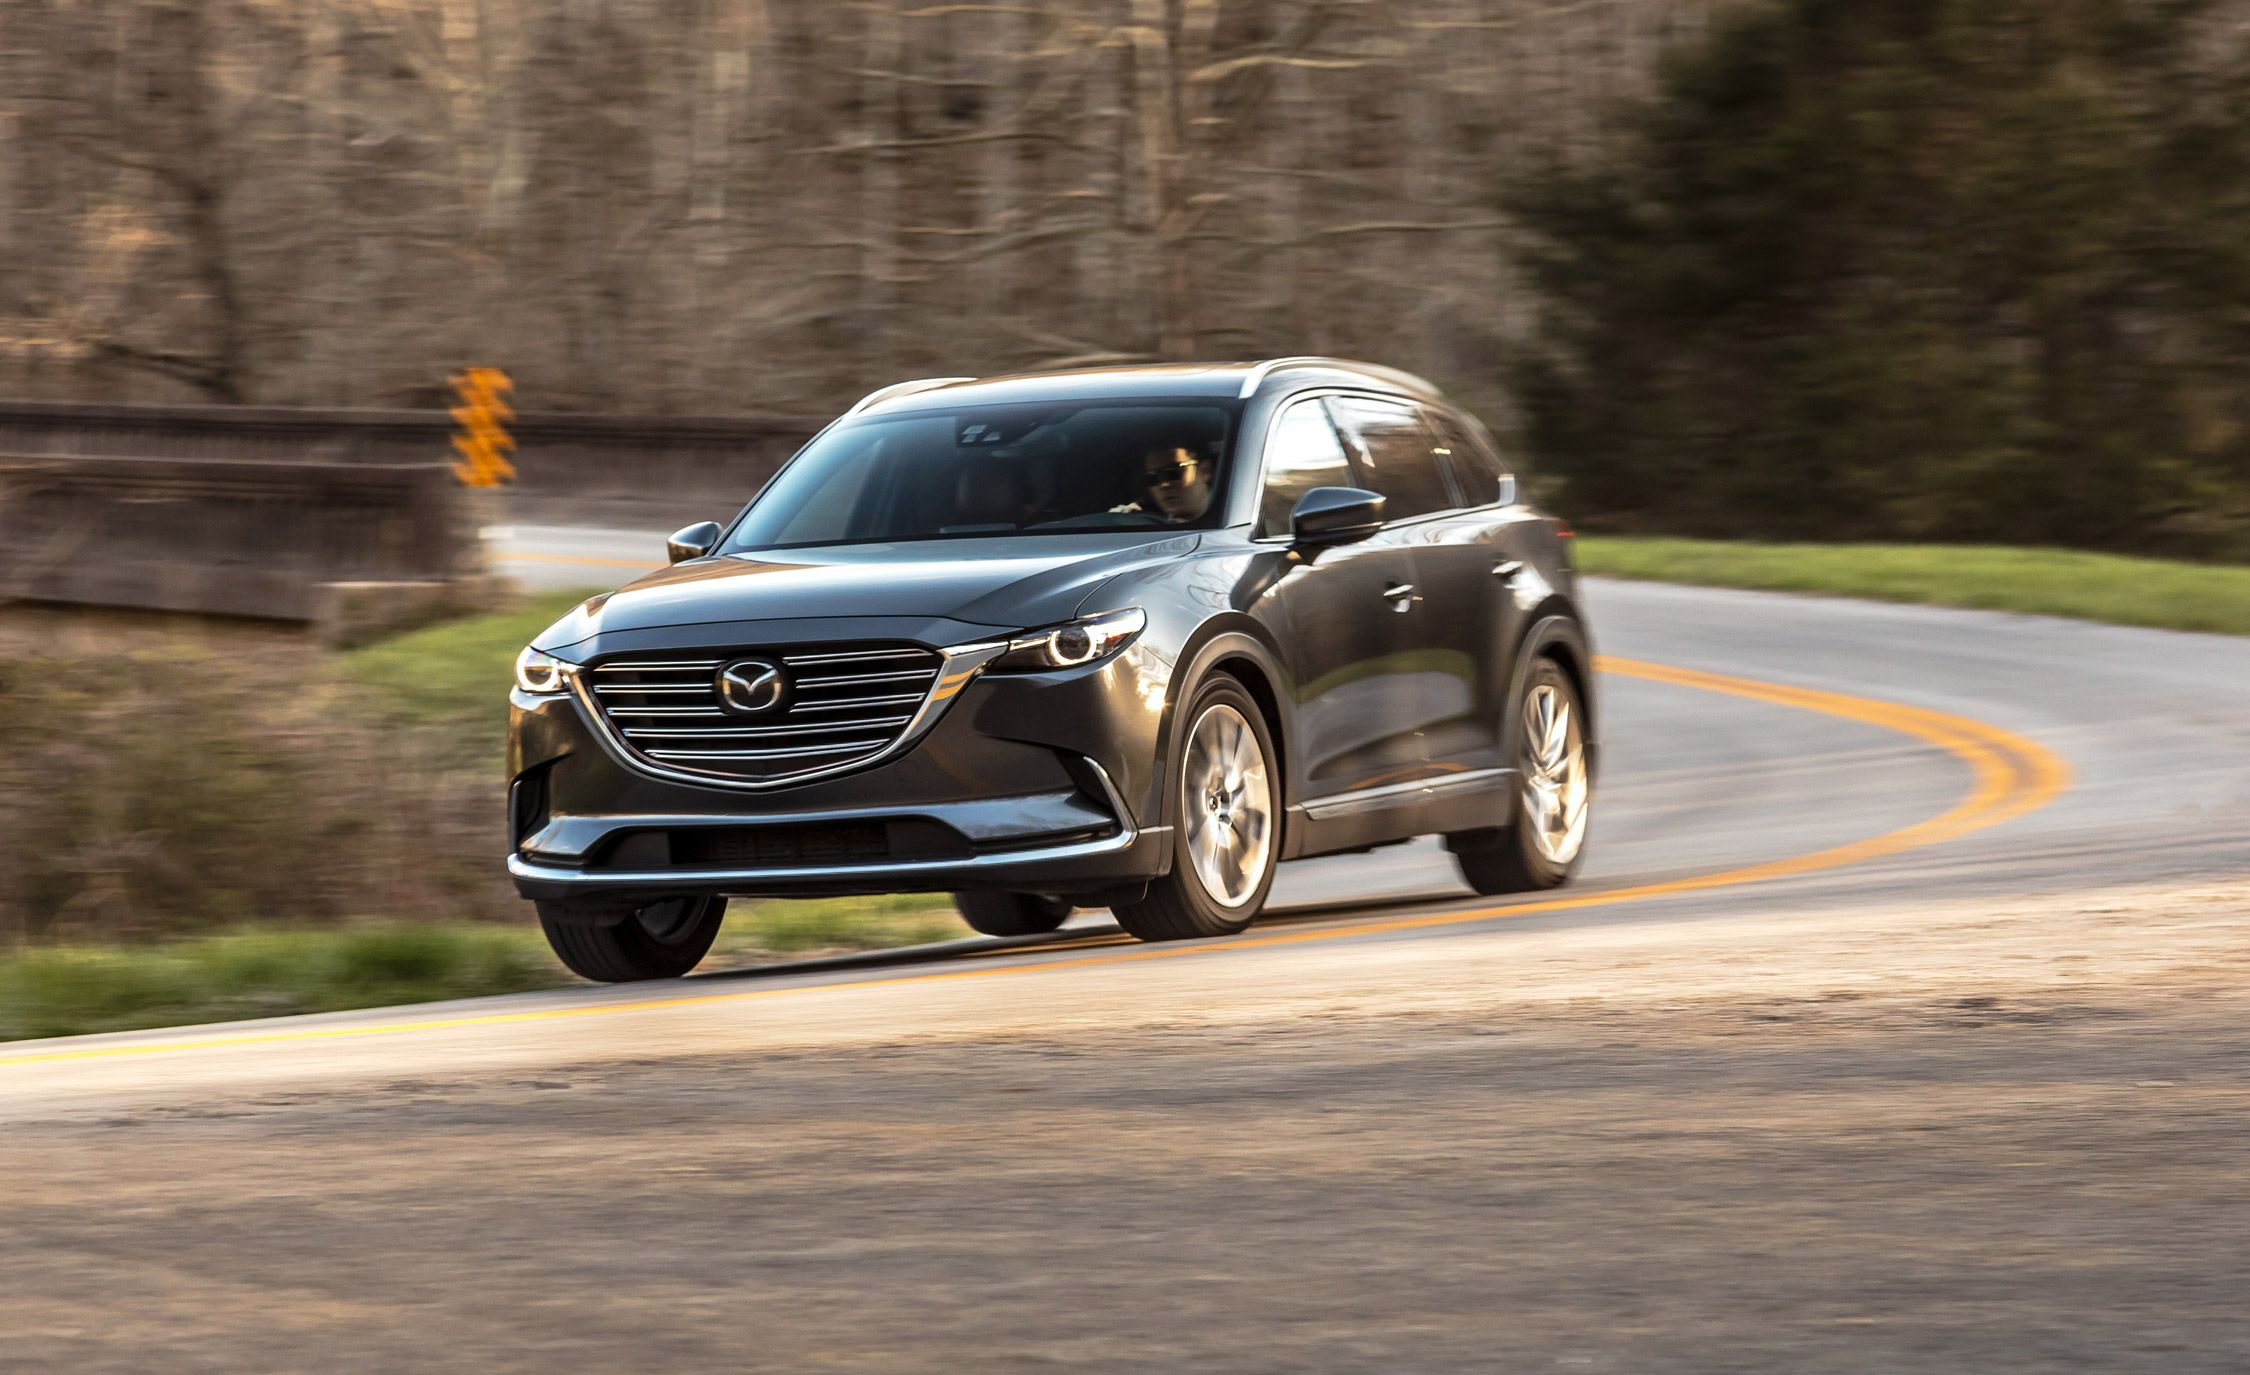 2016 mazda cx 9 lt wrap up placement 1528987929?crop=1xw 1xh;centercenter&resize=900 * 2016 mazda cx 9 long term test wrap up review car and driver